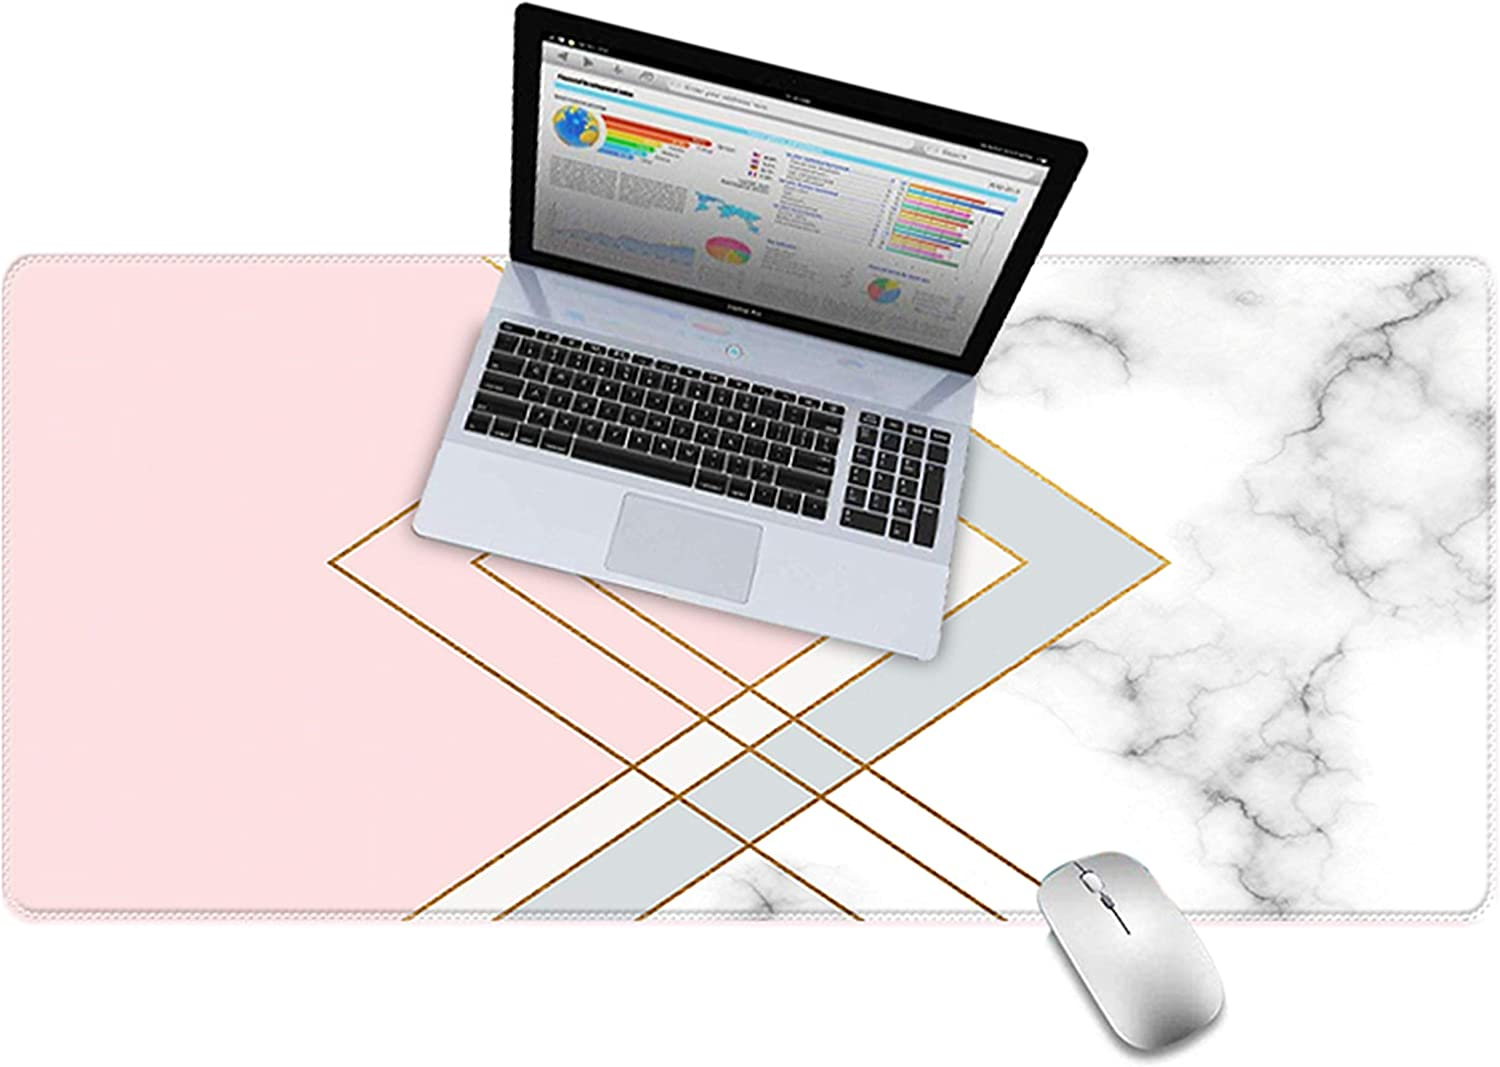 "LuvCase Desk Pad, Office Desk Mat, 31.5"" x 15.7"" PU Leather Desk Blotter, Laptop Desk Mat, Waterproof Desk Writing Pad for Office and Home Decor, Thick Gaming Mouse Pad (Pink White Cloud Marble)"